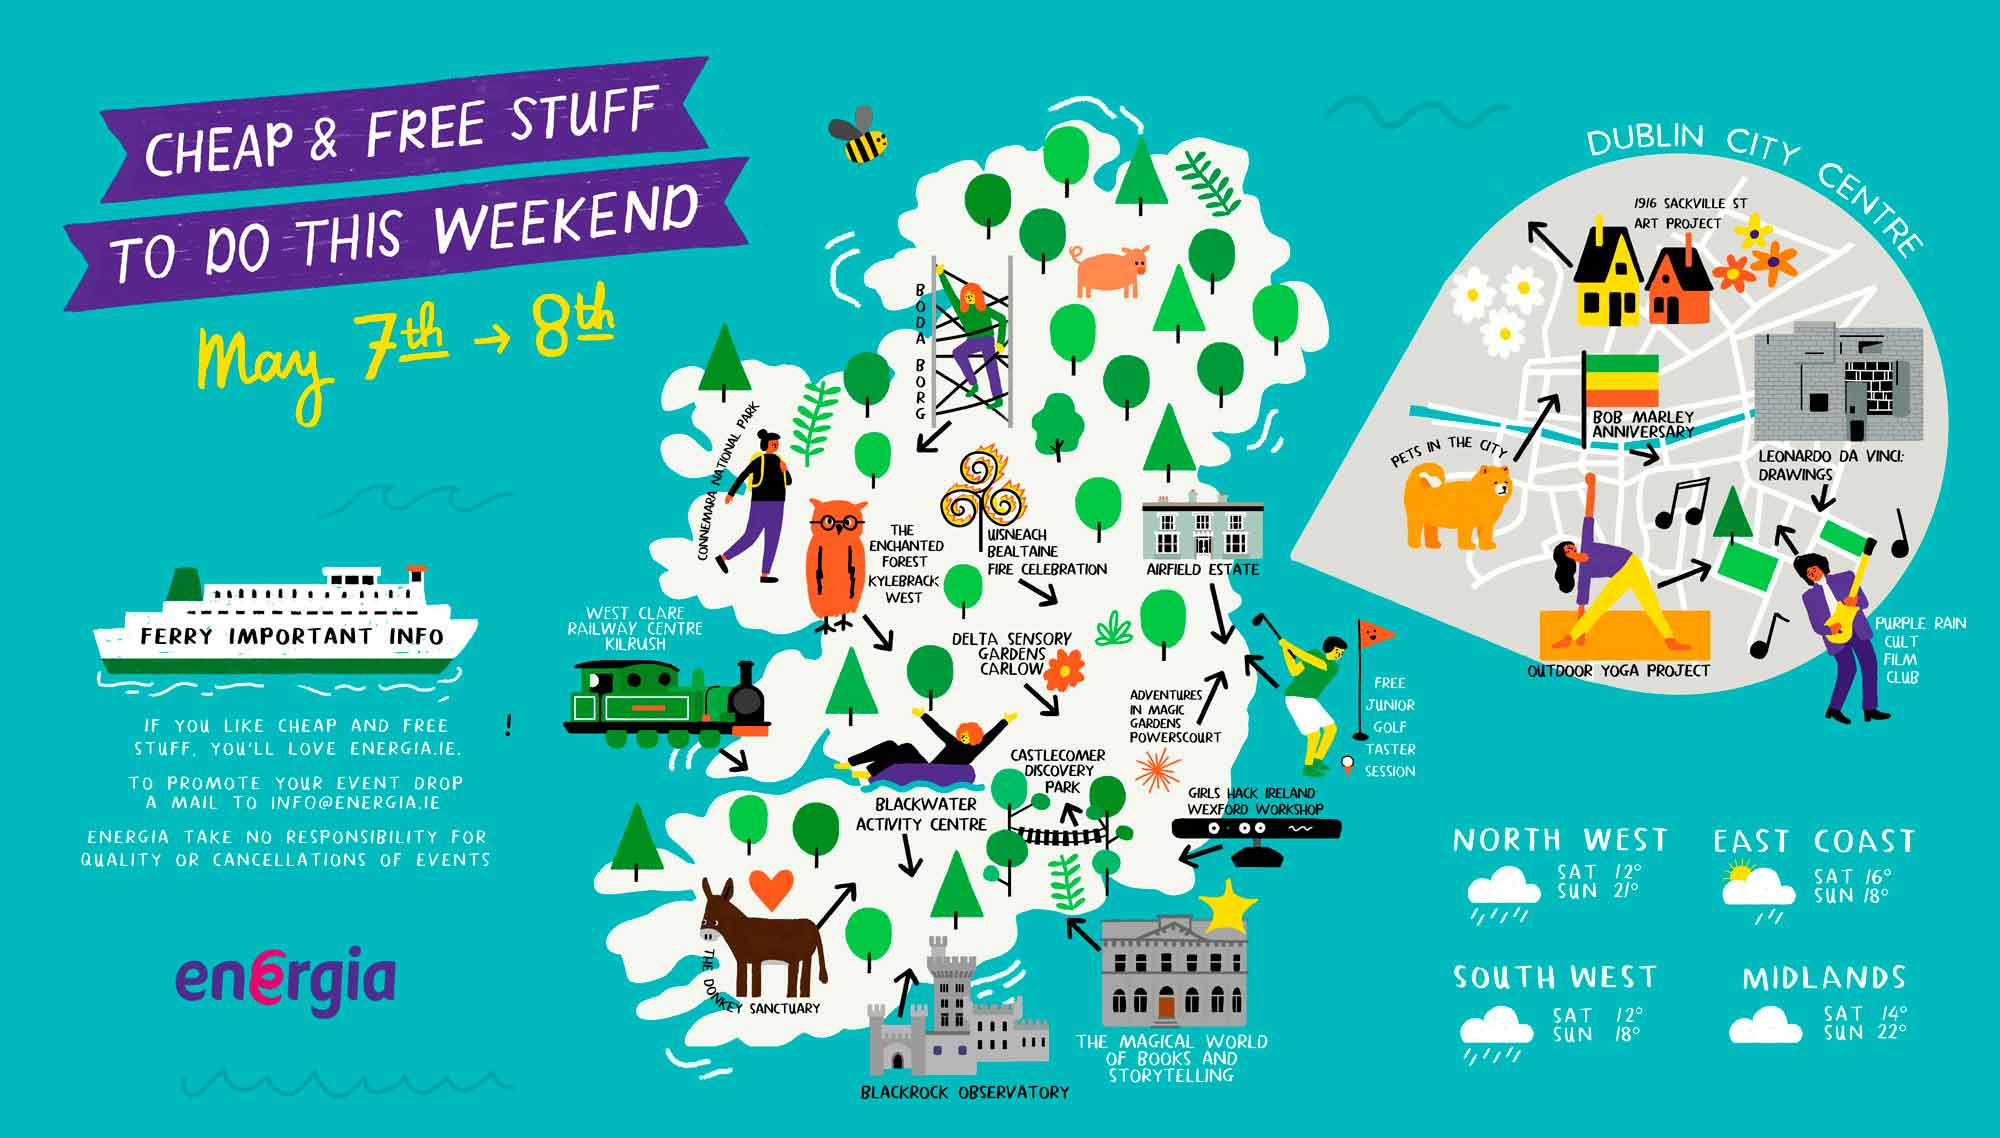 Cheap & Free Stuff To Do This Weekend 6th - 8th May